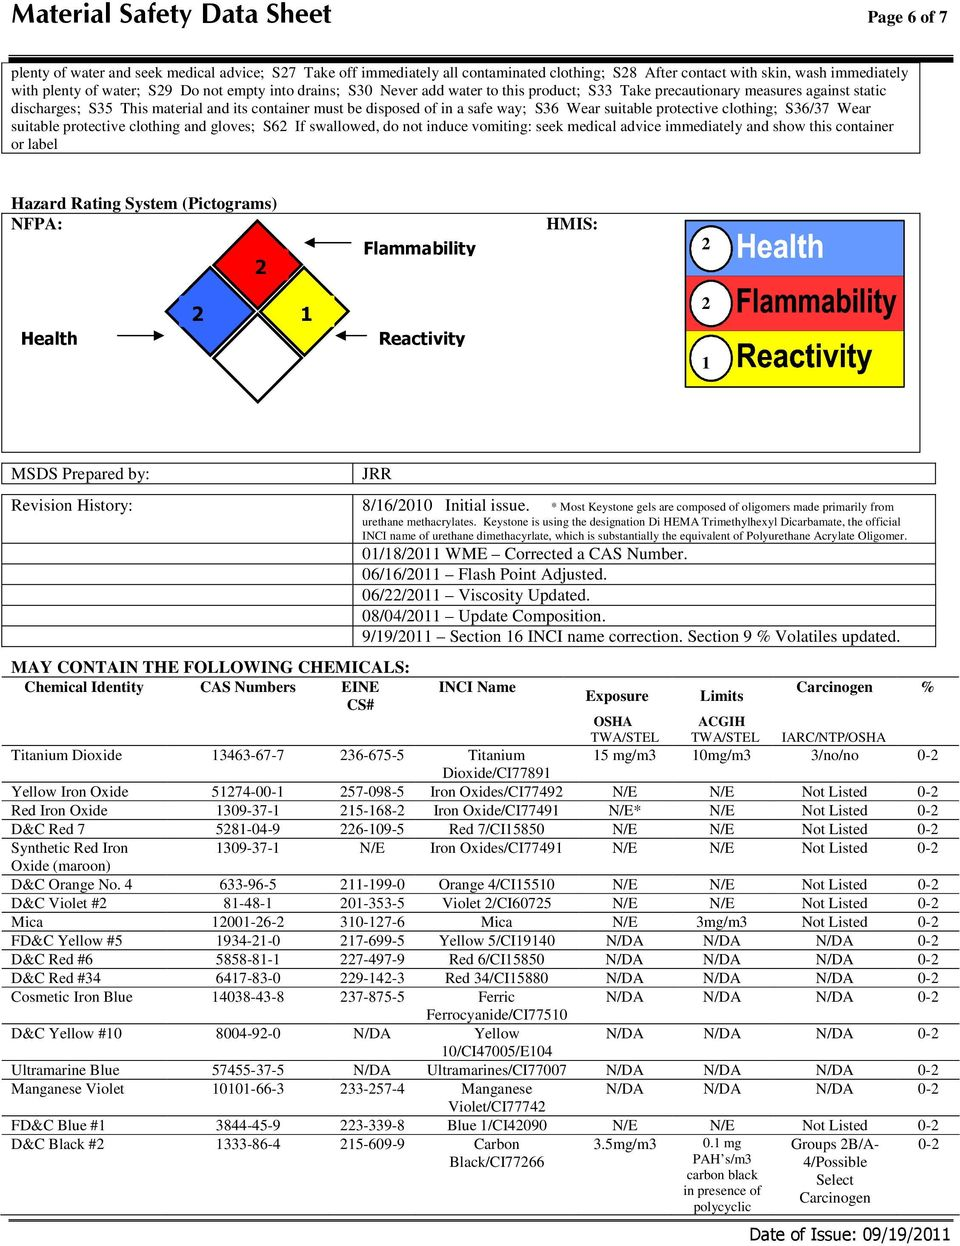 Material Safety Data Sheet Page 1 of 7 - PDF